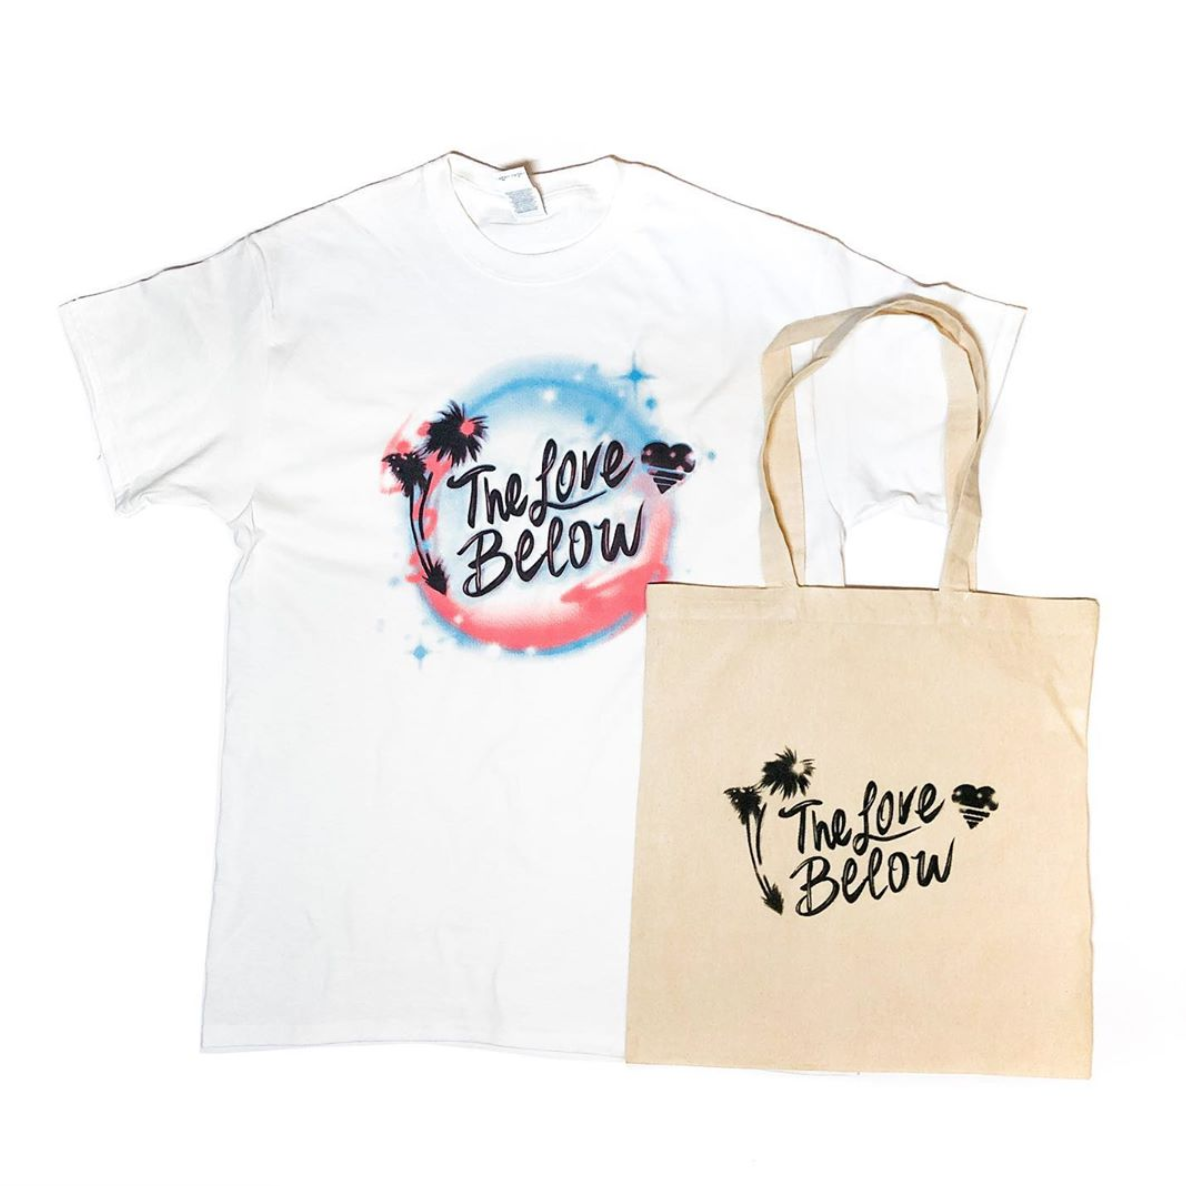 The Love Below 4 year anniversary Illustration on t-shirt and tote bag